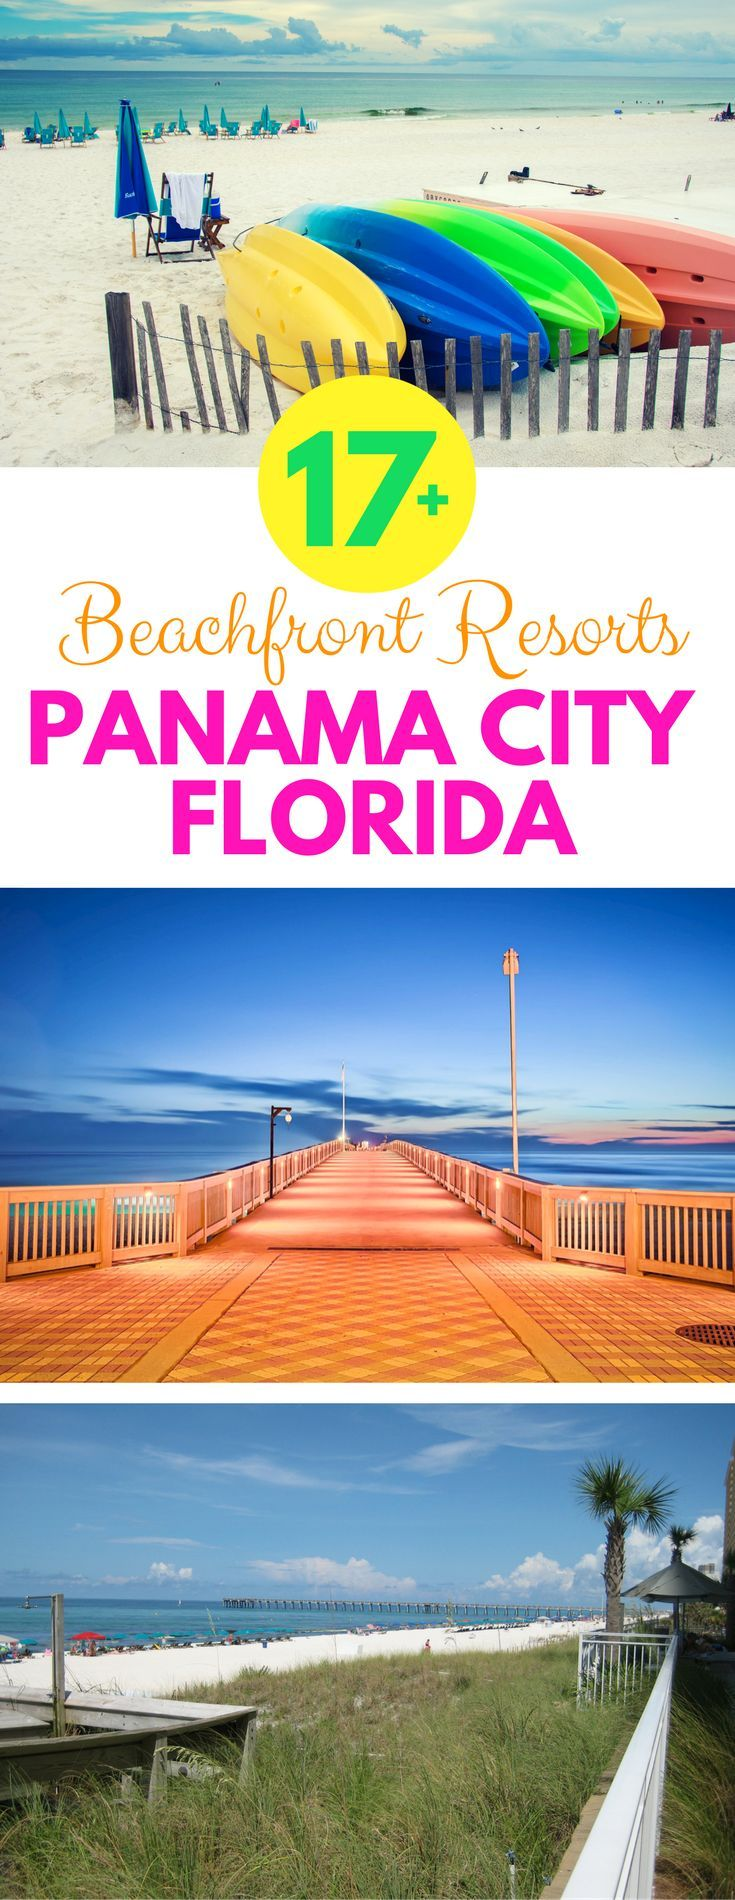 Looking for a beachfront resort for your next Panama City, Florida vacation? Check out these amazing vacation rentals right on the beach with accommodations large enough for kids, grandparents, and the entire family.